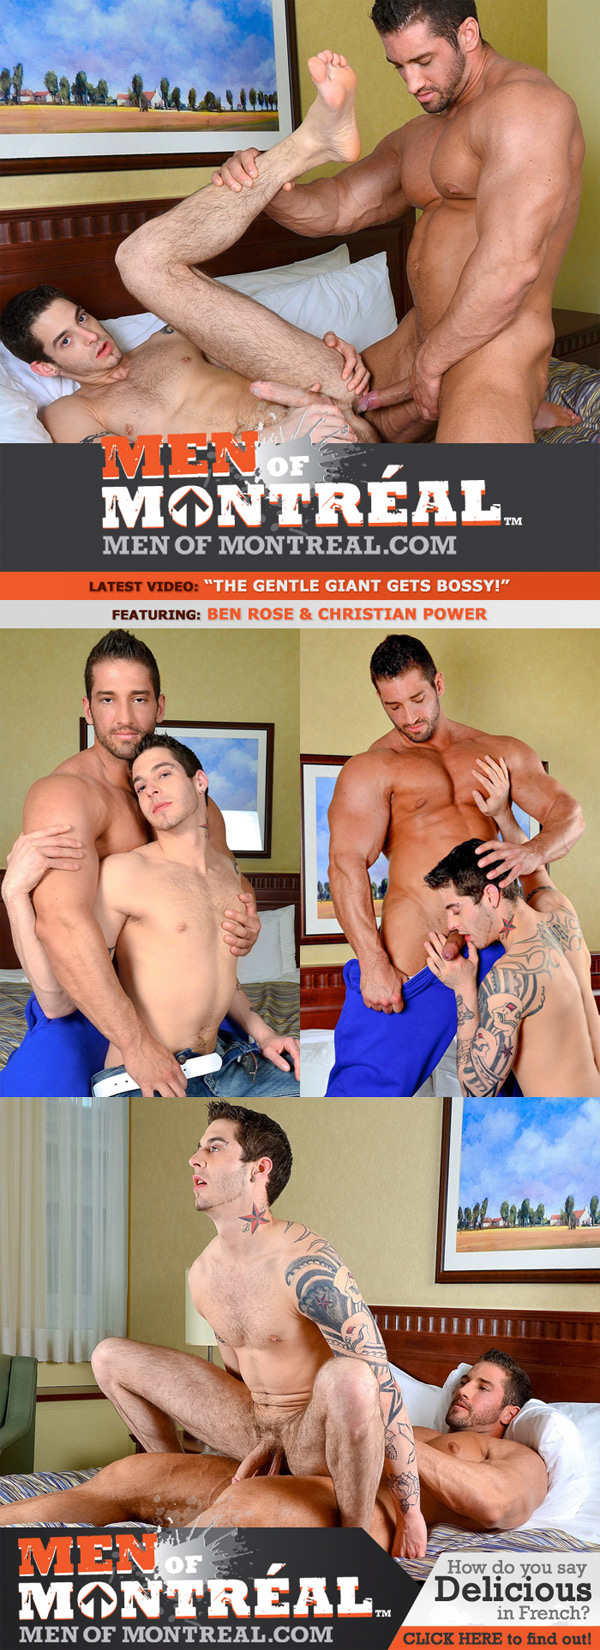 The Gentle Giant Gets Bossy (Ben Rose & Christian Power) at MenOfMontreal